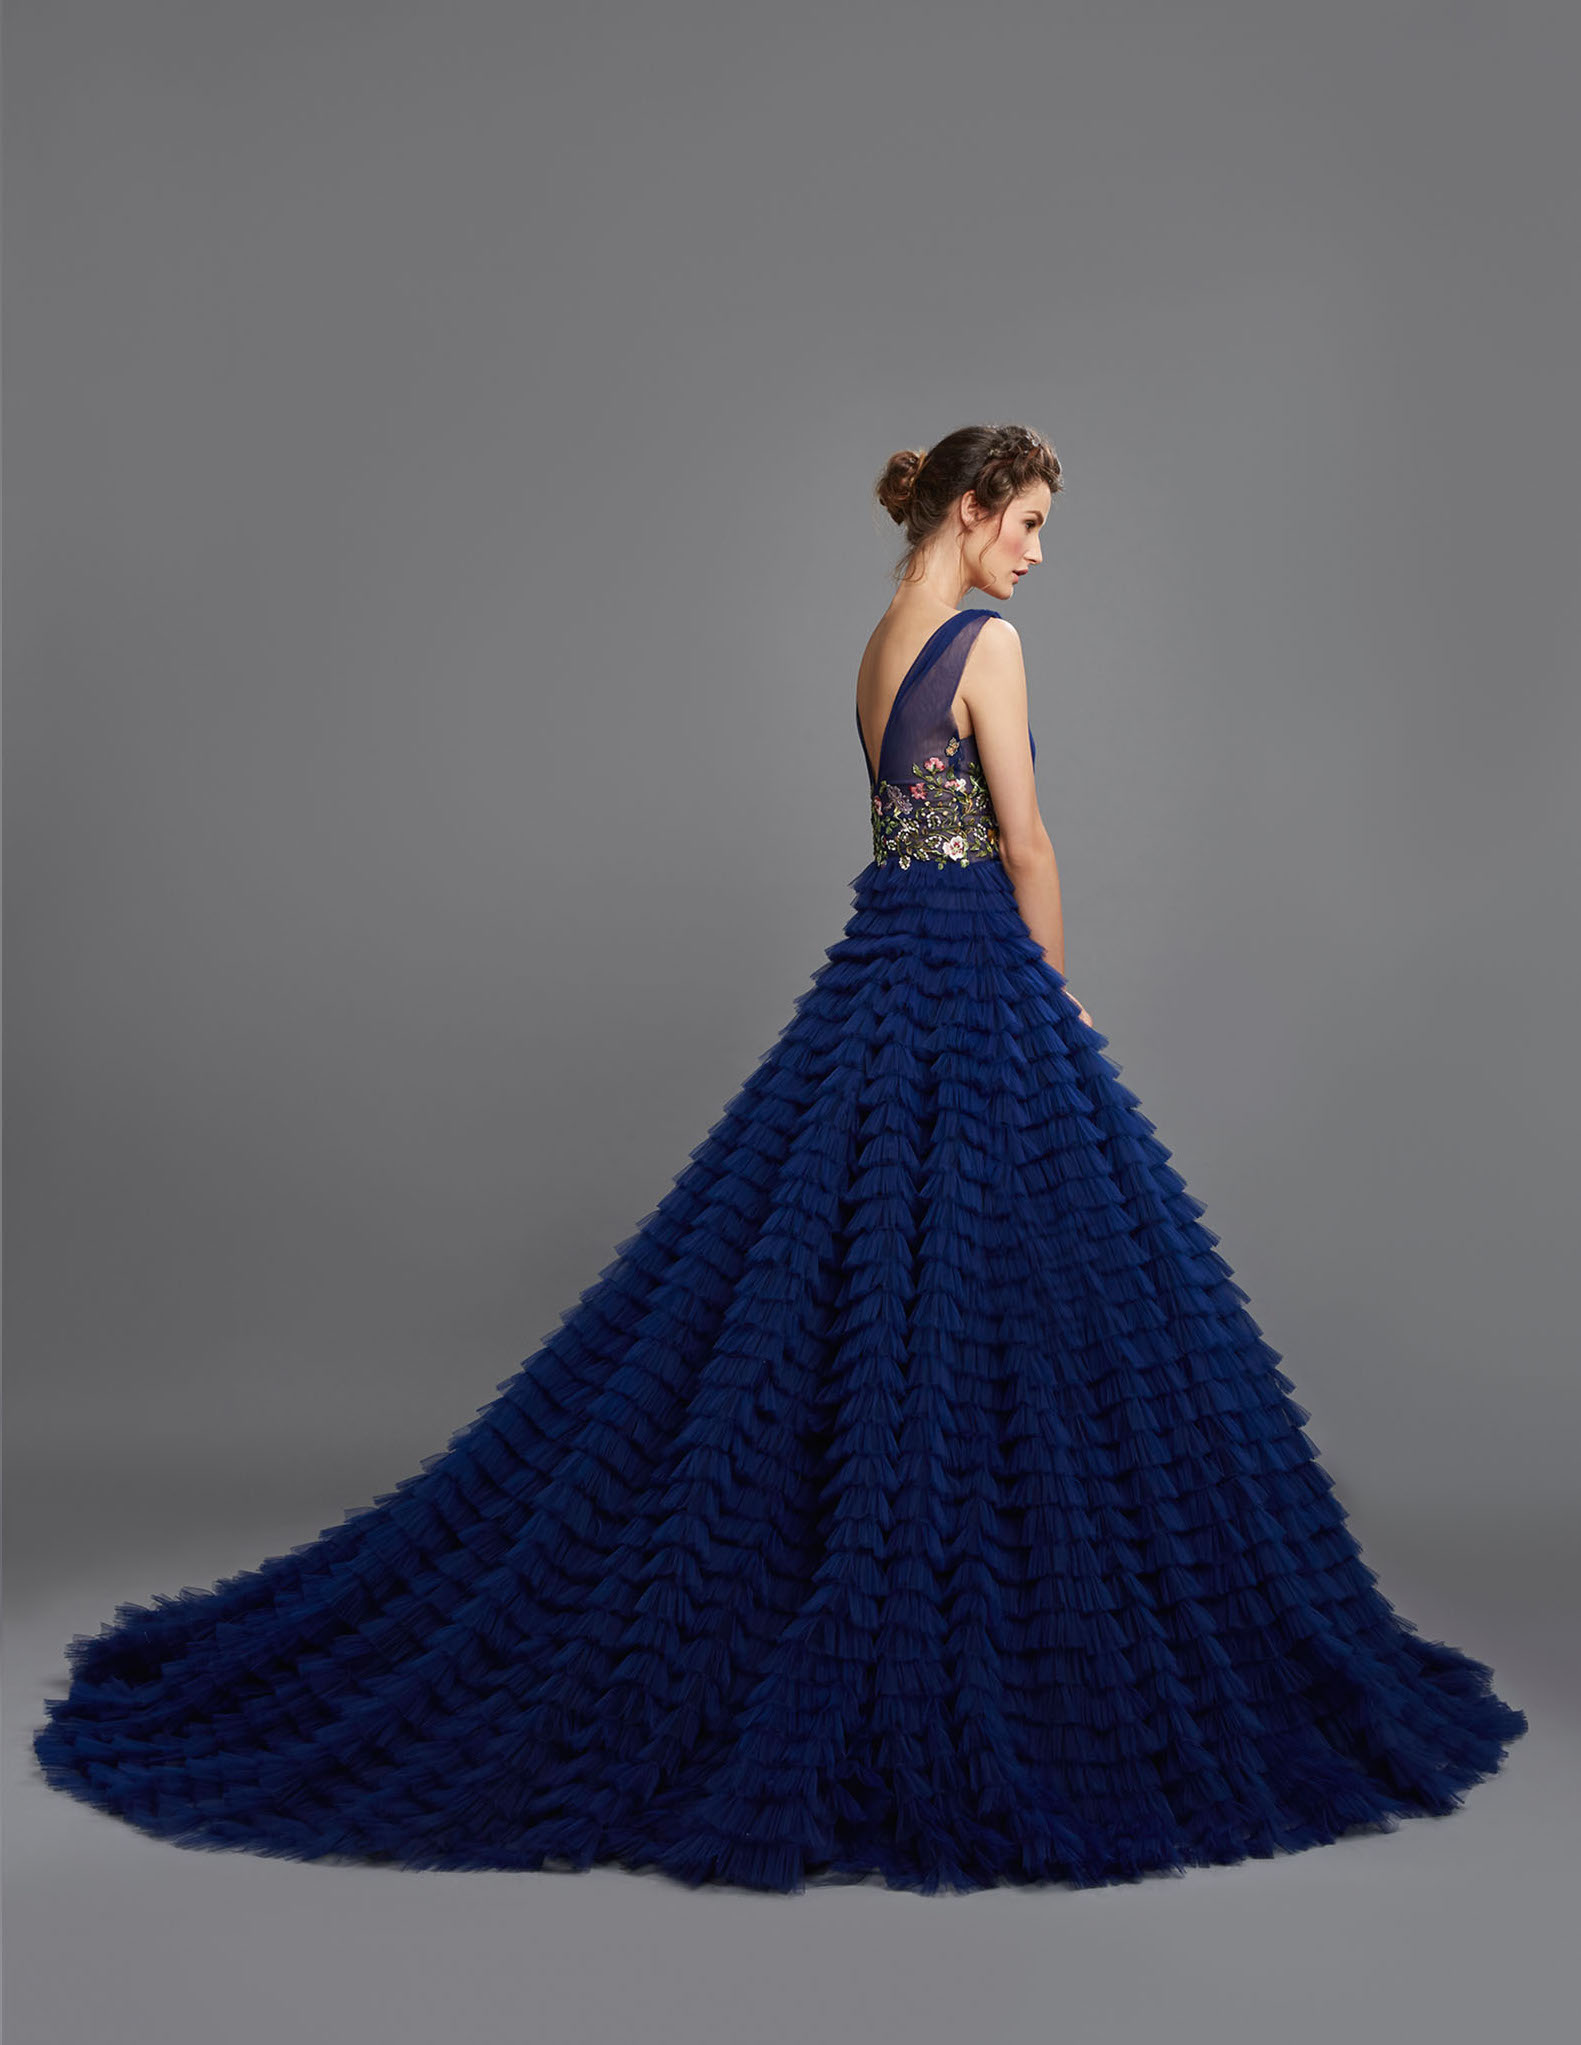 Blue wedding dress Hamda al fahim